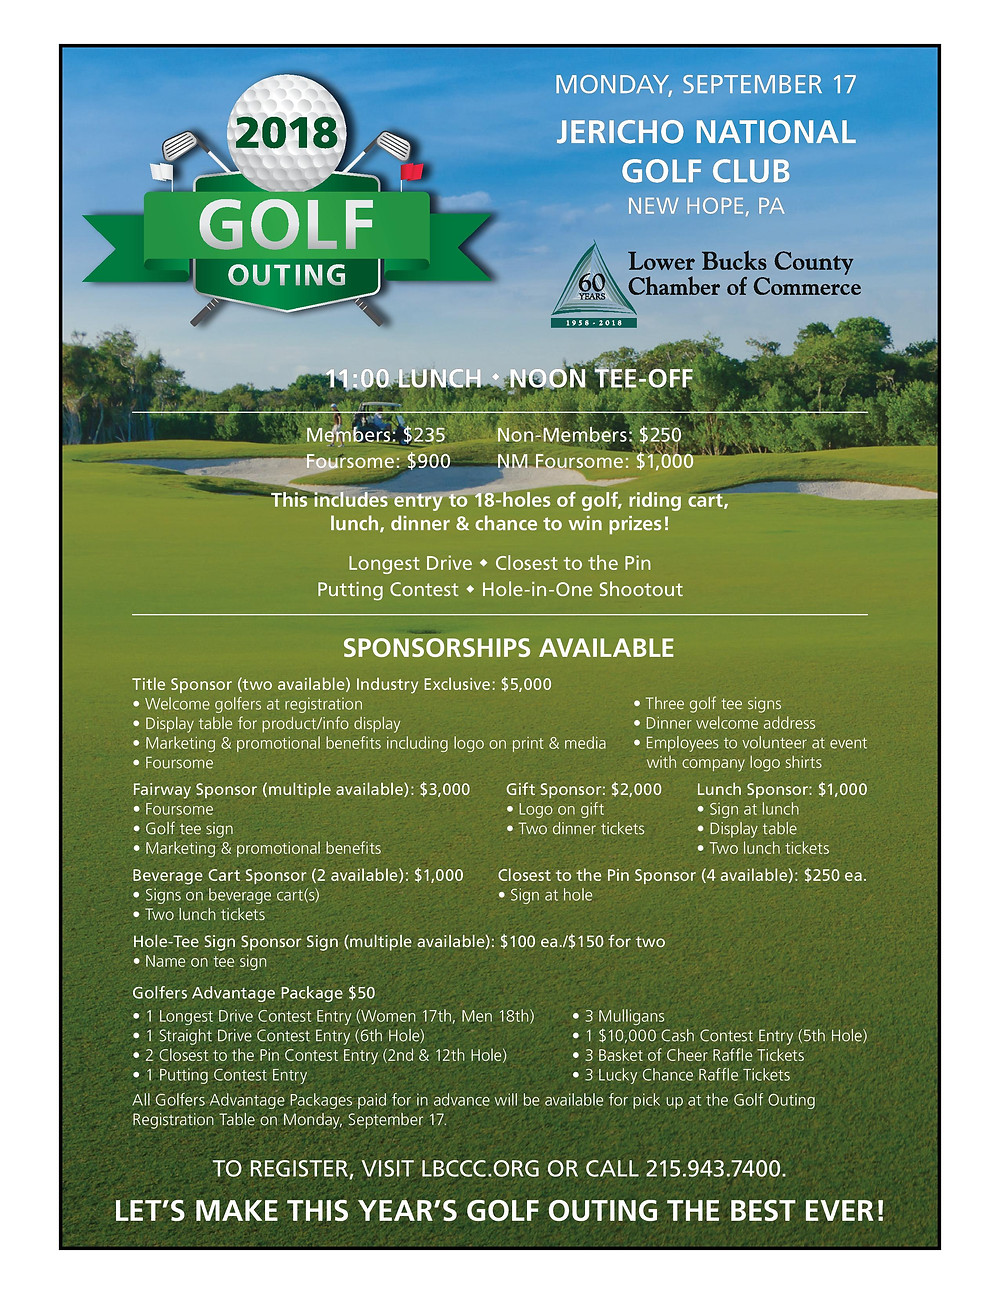 Flyer for the LBCCC 2018 Golf Outing including sponsorship information and prices.